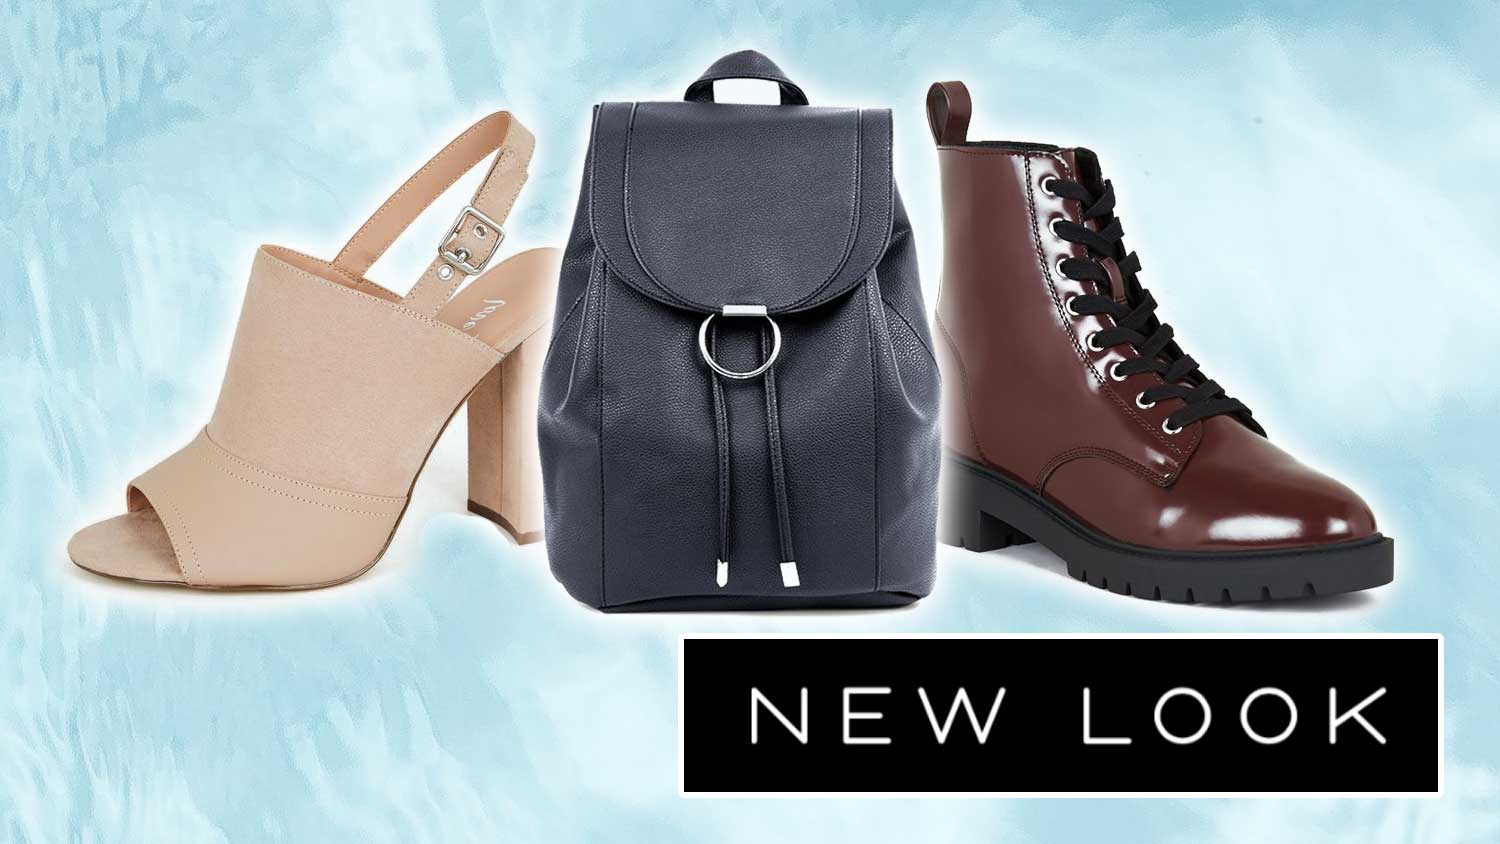 New Look Launches 500 Vegan Bags and Shoes